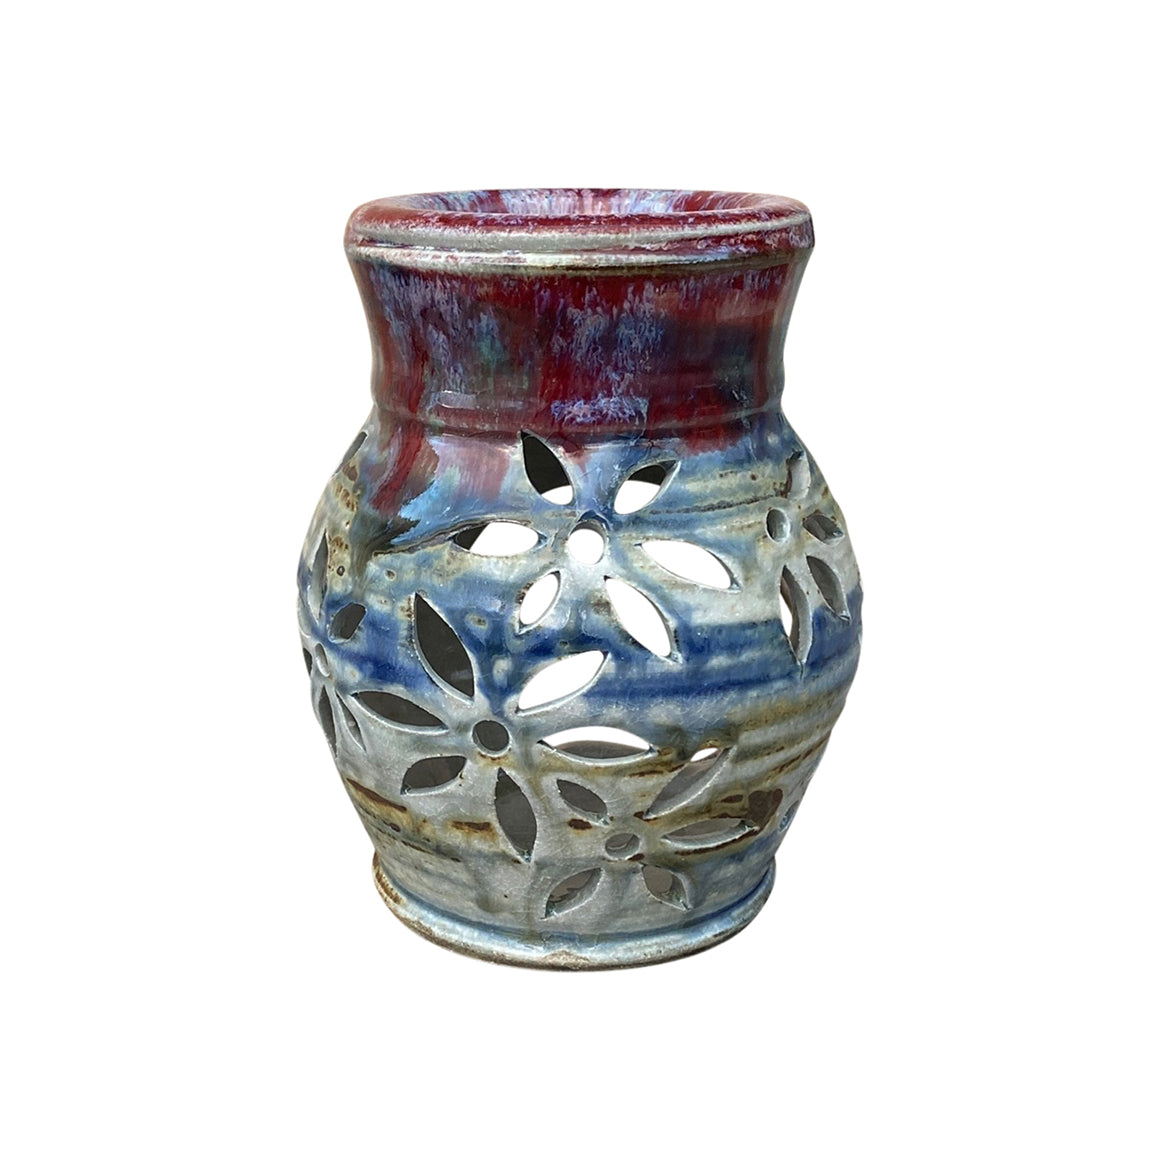 Michael Kennedy Ceramics Oil Burner